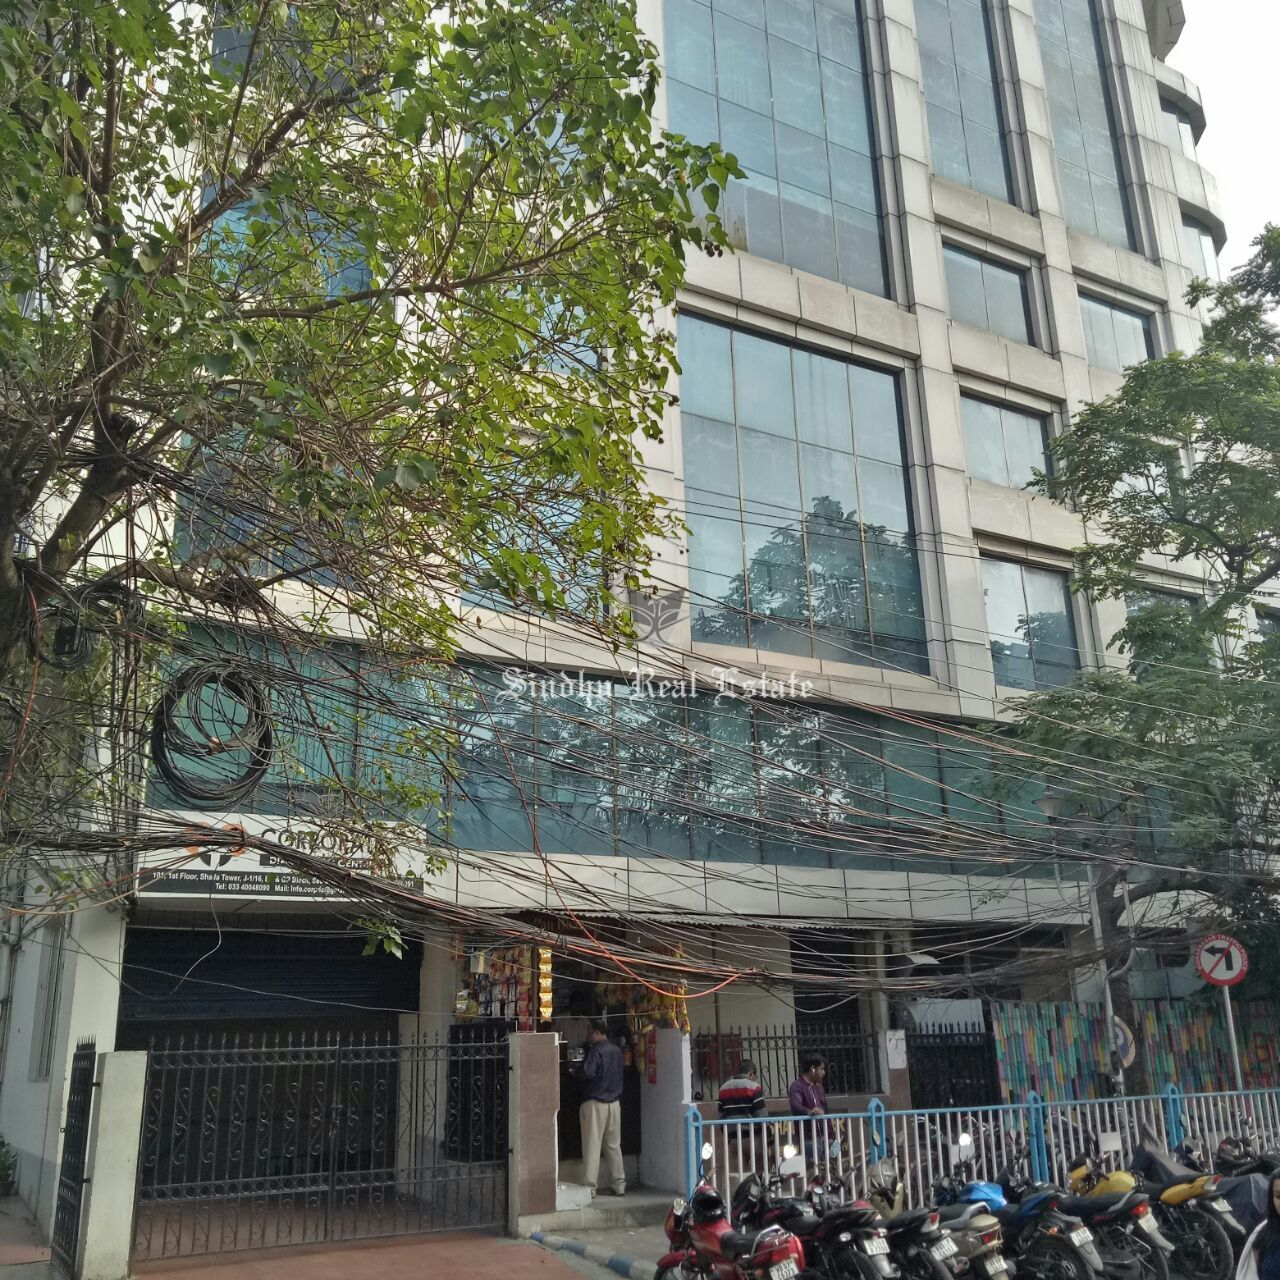 Rent of a 2500 sq/ft furnished commercial office space